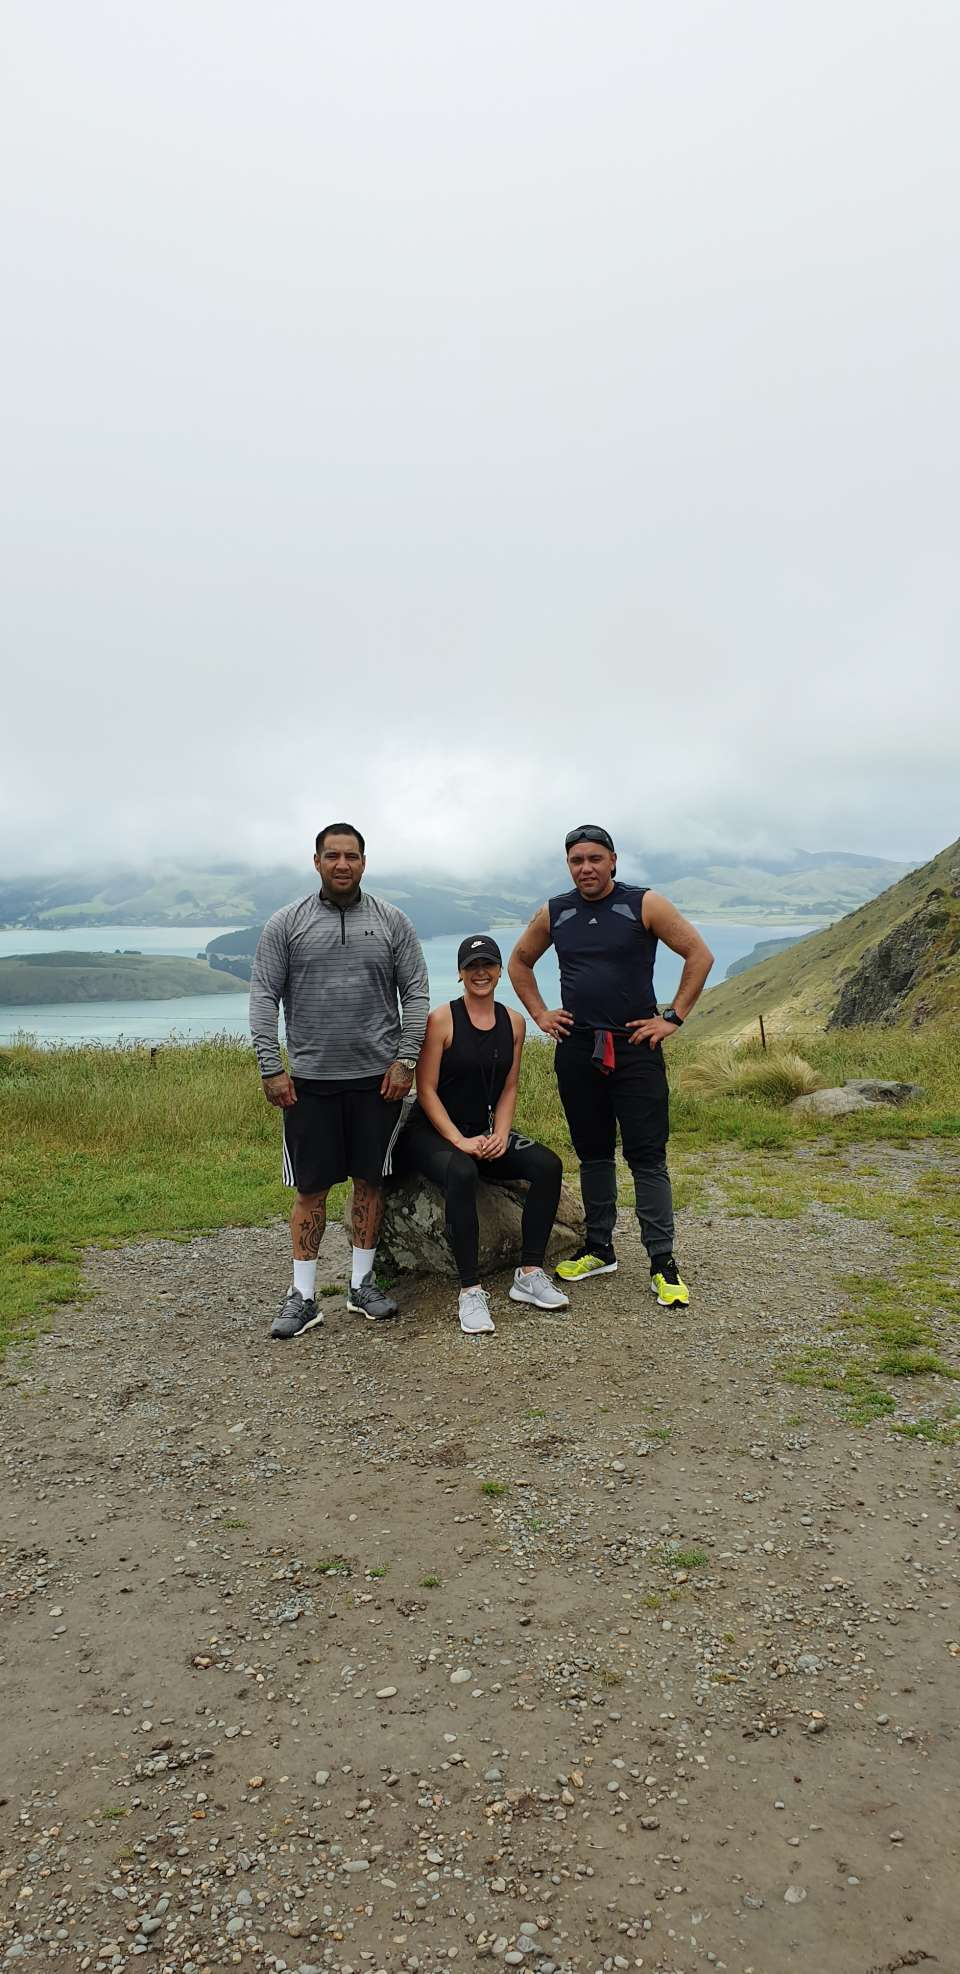 Beautiful day out with beautiful people!! The mist was stunning. Days like these are good for the tinana, hinengaro, wairua and of course, create a tight whanau! Love to see how you all support one another in these spaces and the laughter that is herd from a mile away!! You guys are amazing! #mauriora